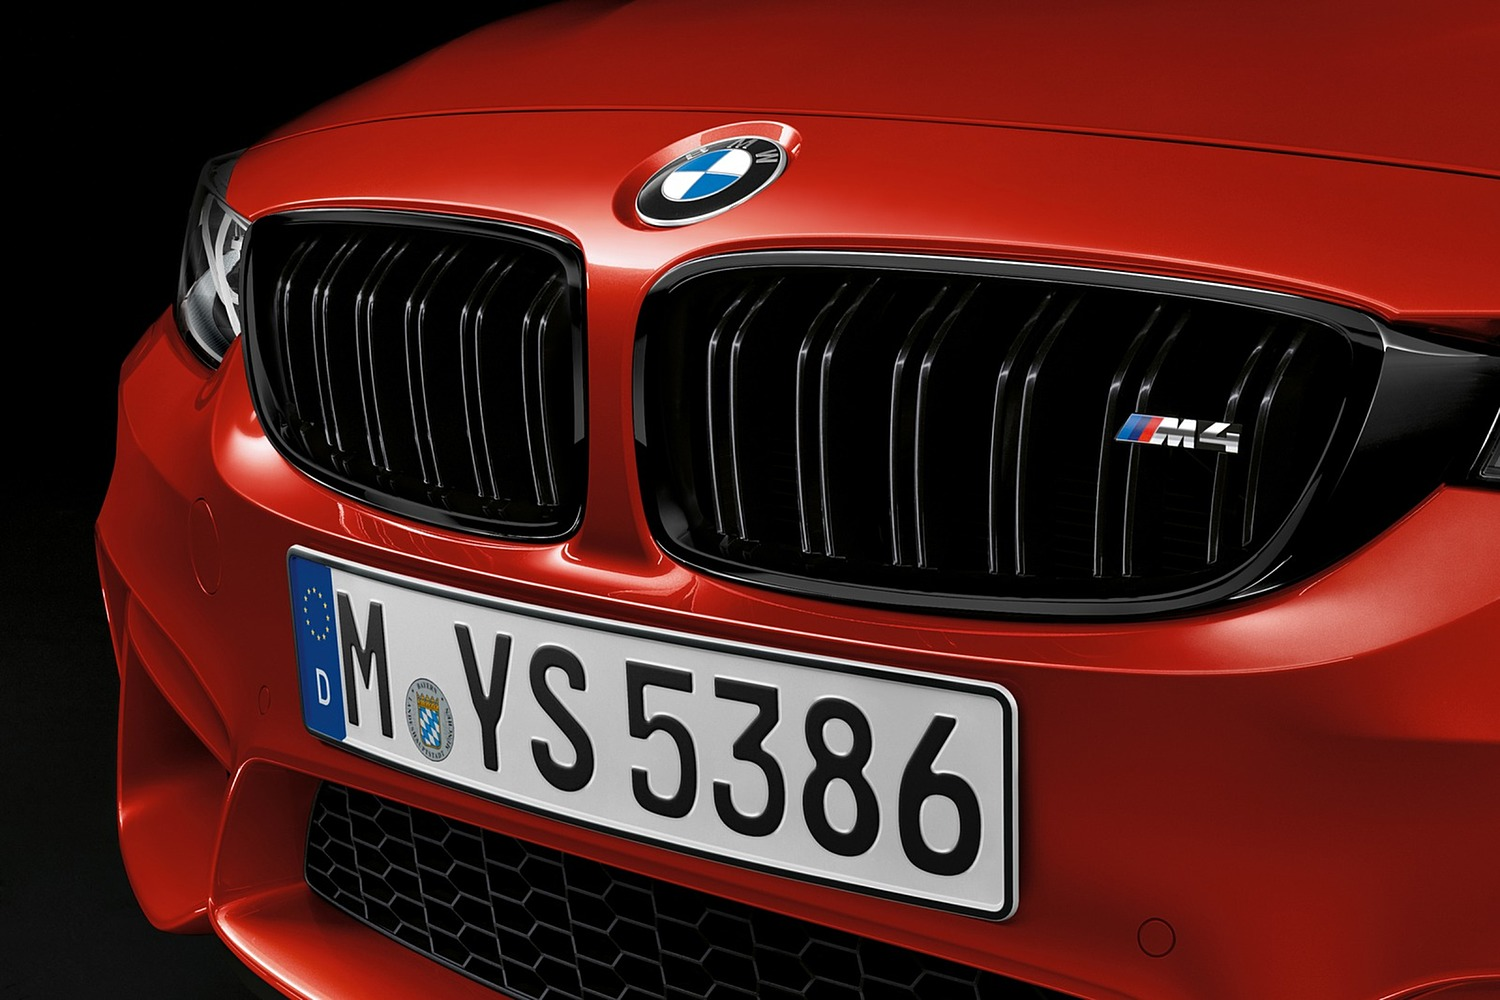 2018 BMW M4 Coupe Front Badge